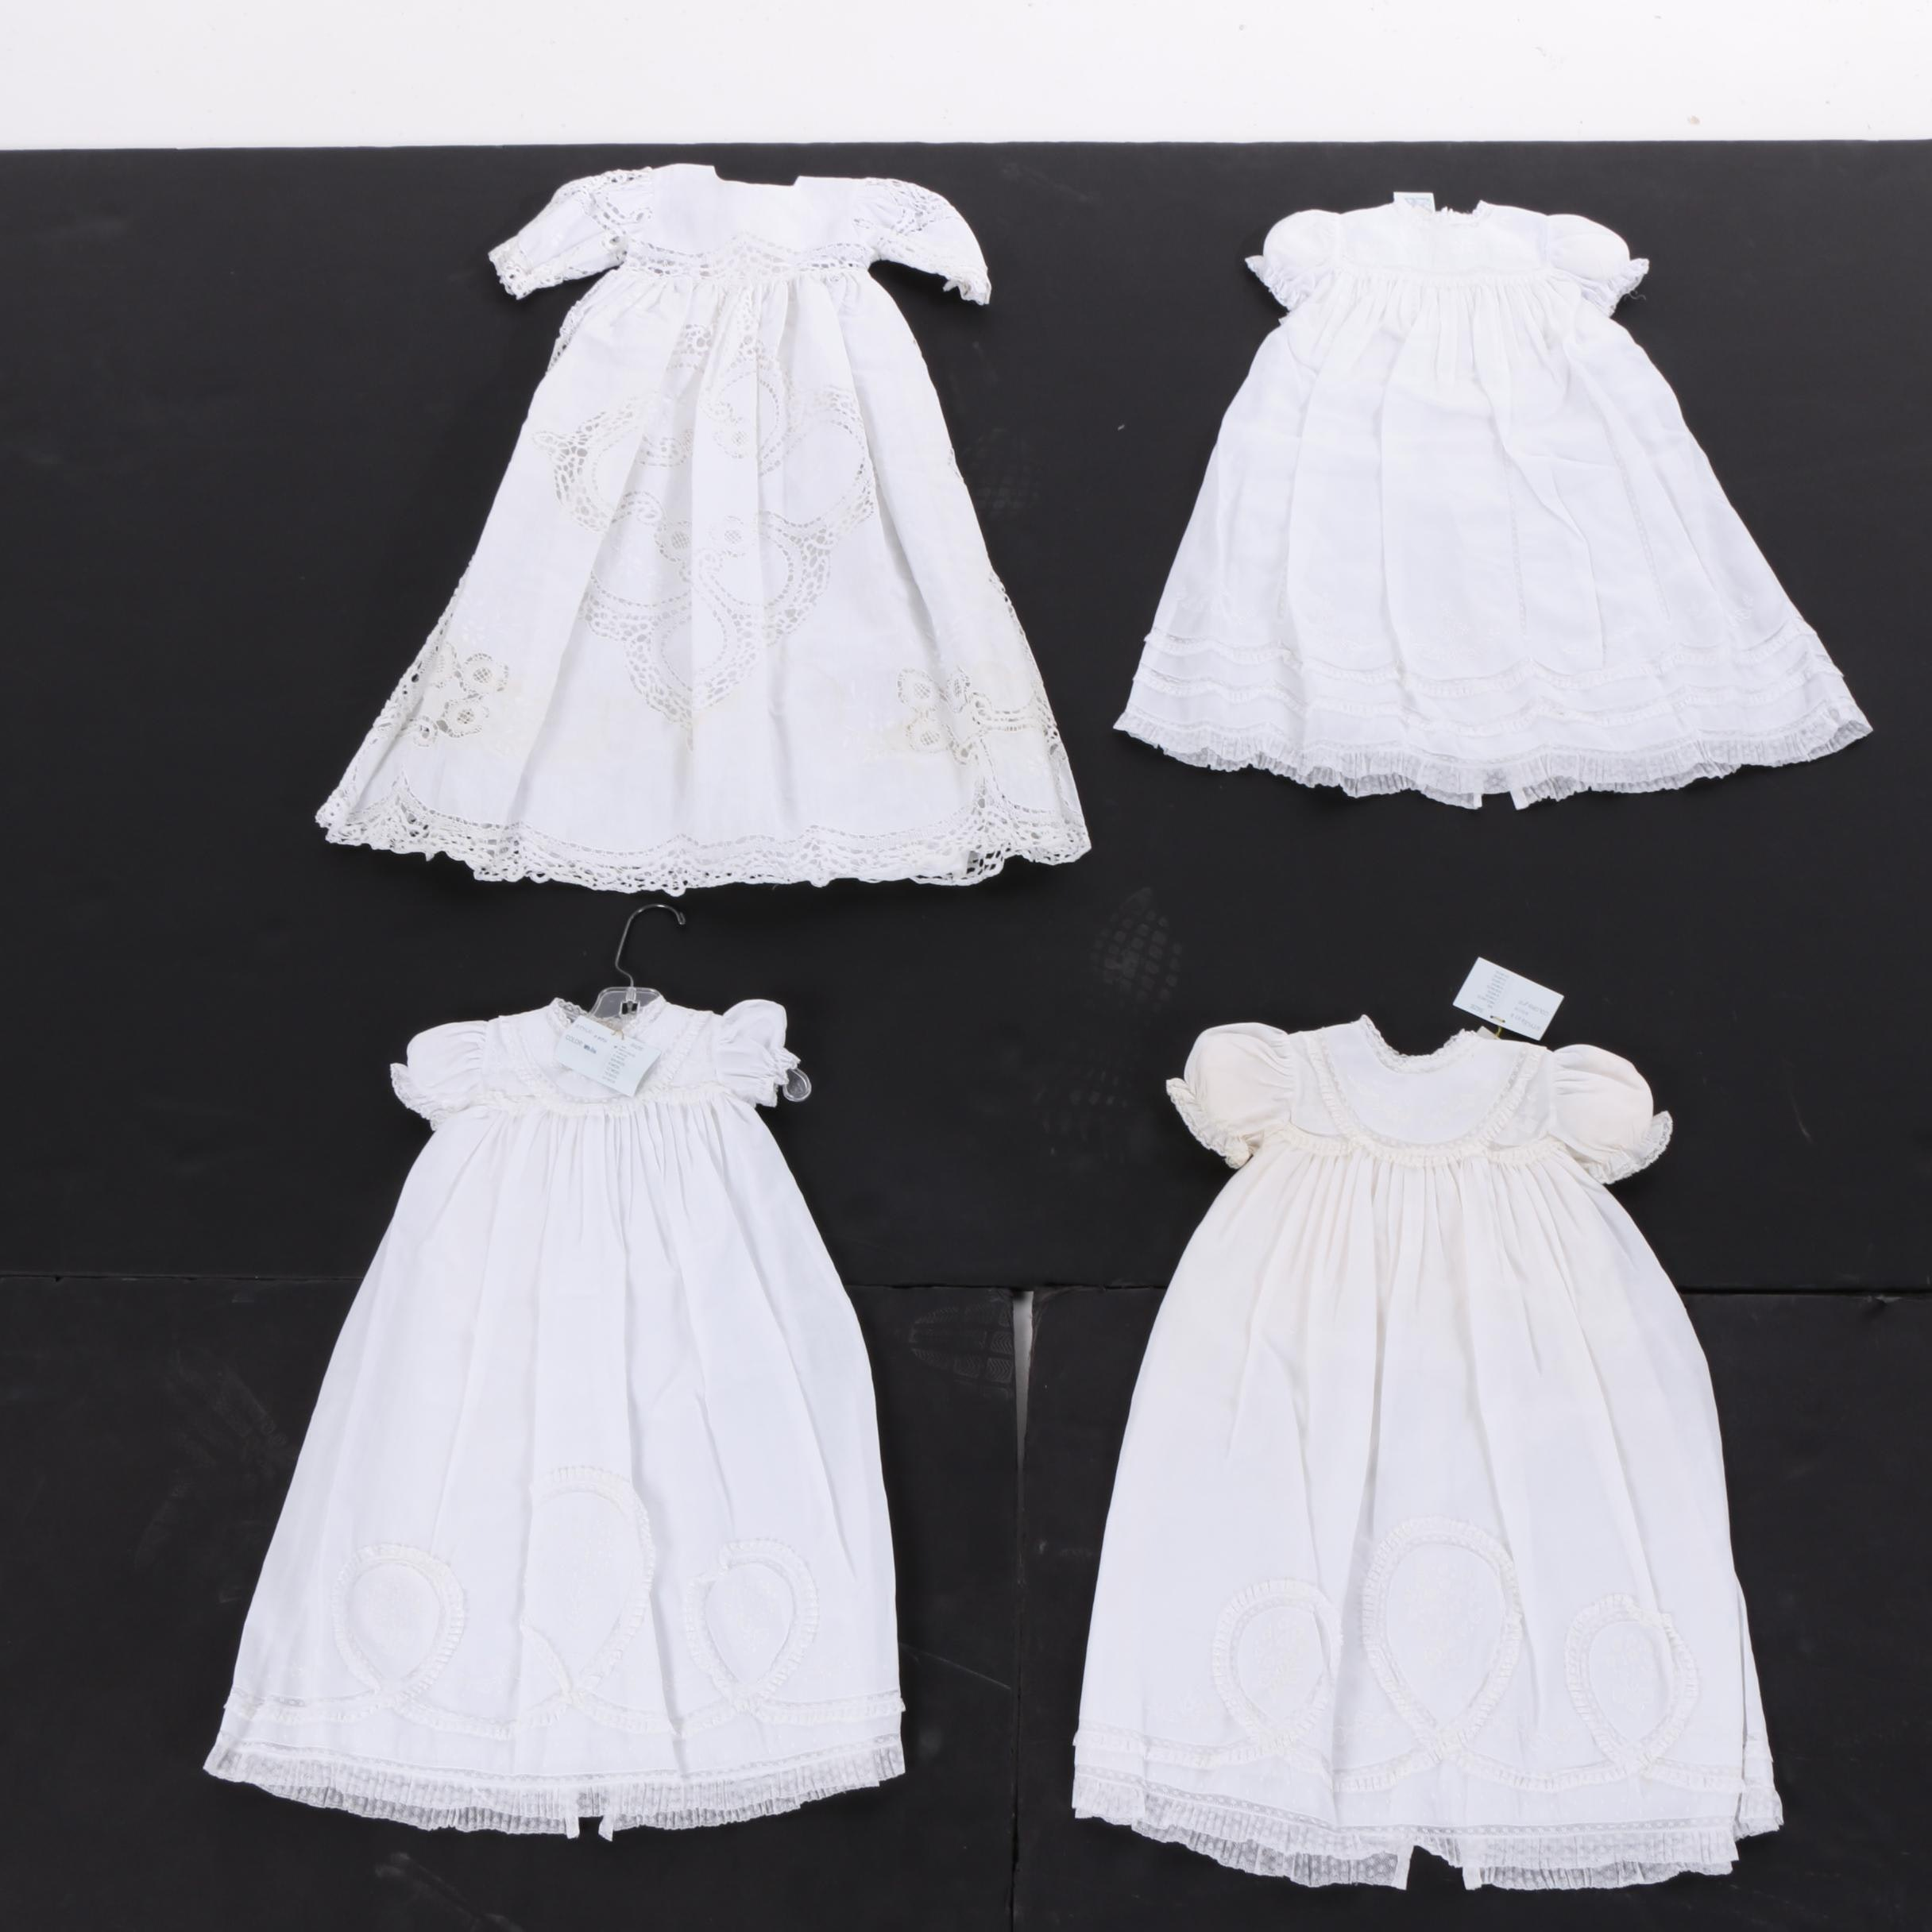 Feltman Brothers and Rendezvous Inc. Christening Gowns